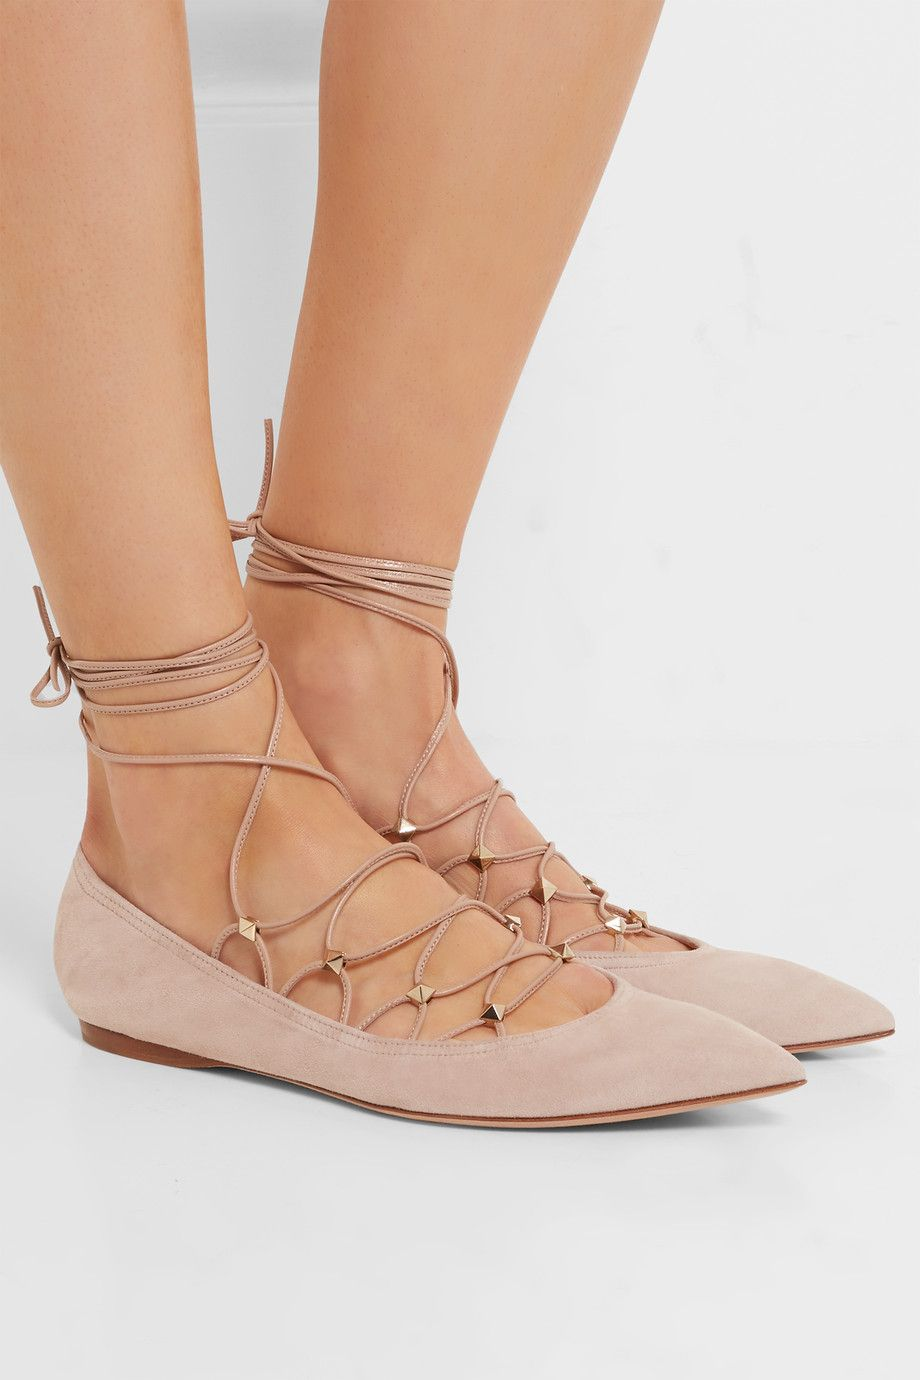 Valentino Lace Pointed-Toe Flats sale outlet locations Y2h89ft